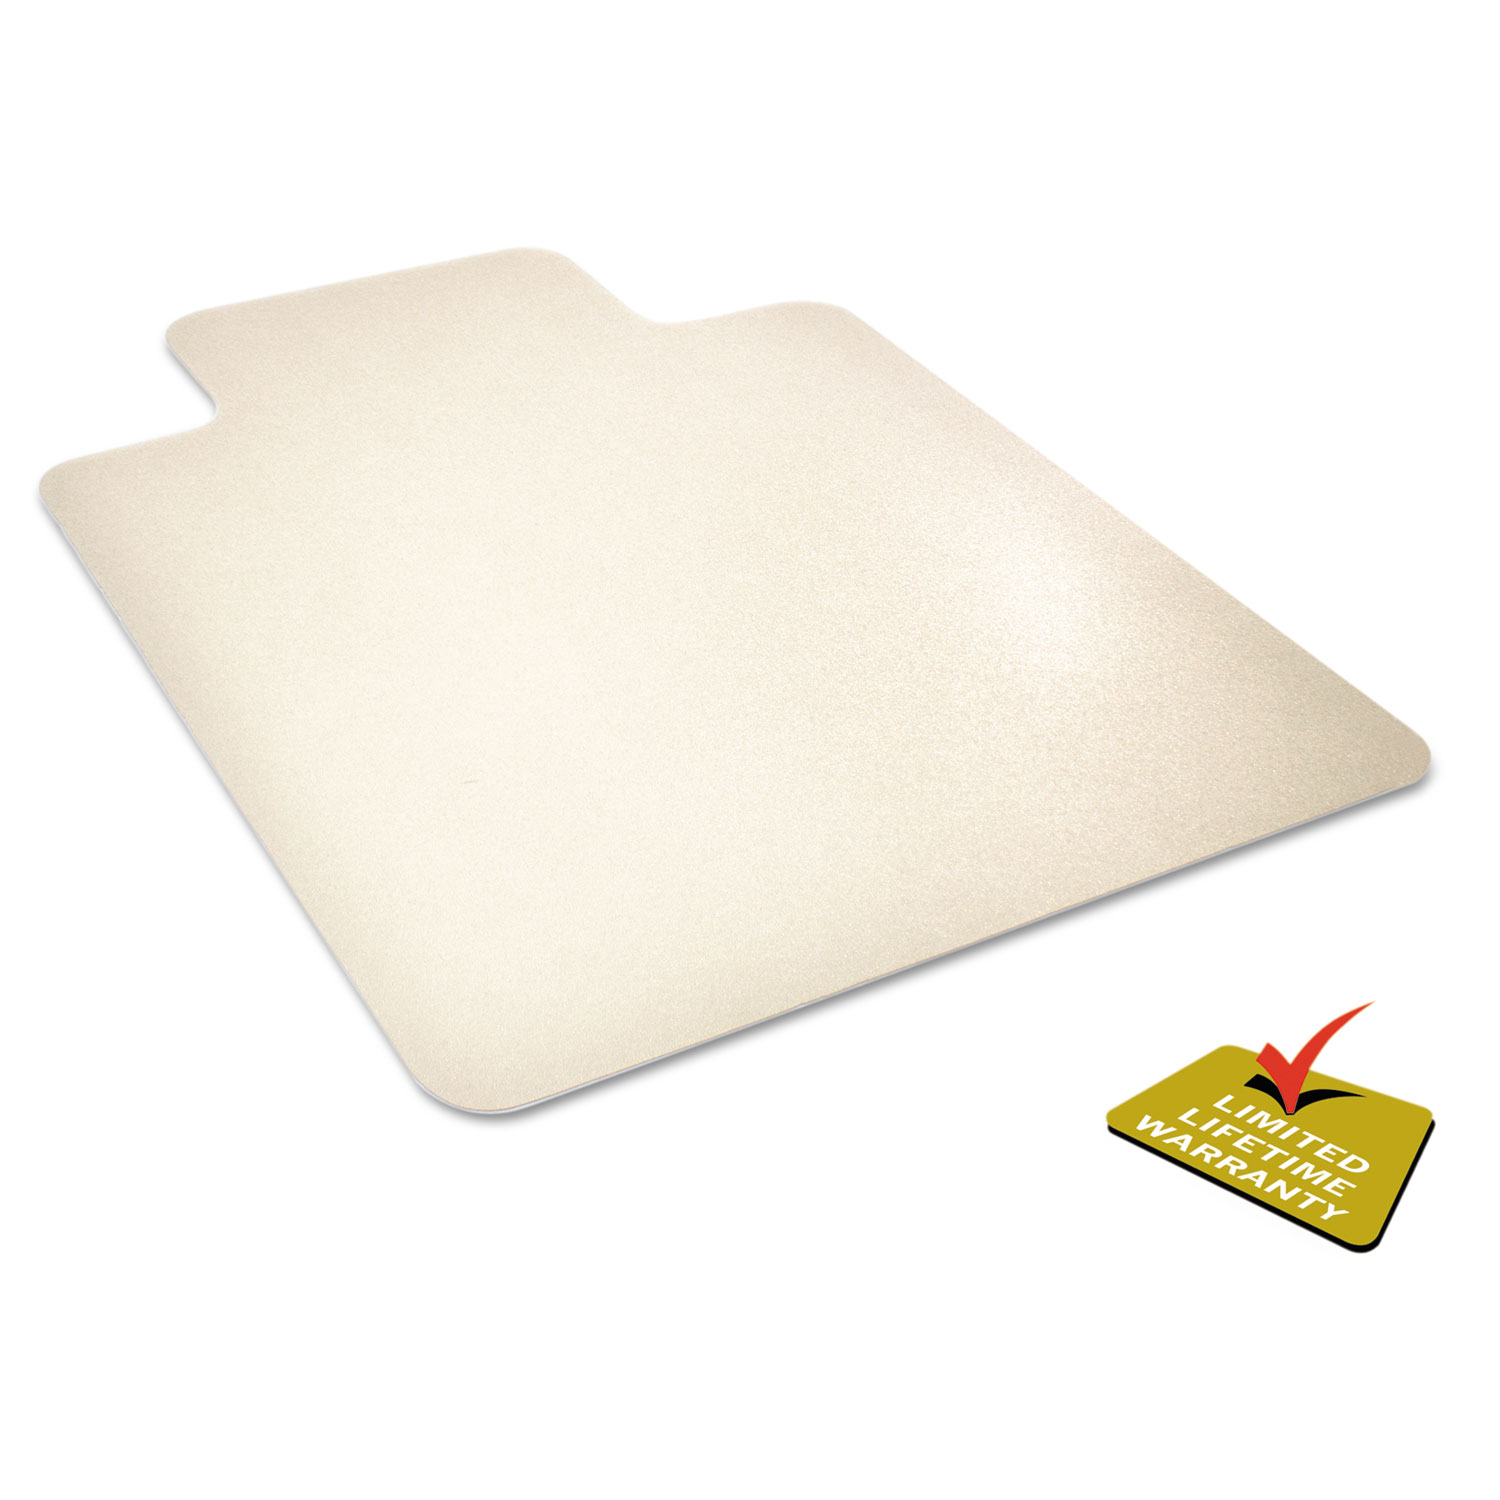 office chair mat 45 x 60 patio chairs with ottomans environmat recycled anytime use for hard floor